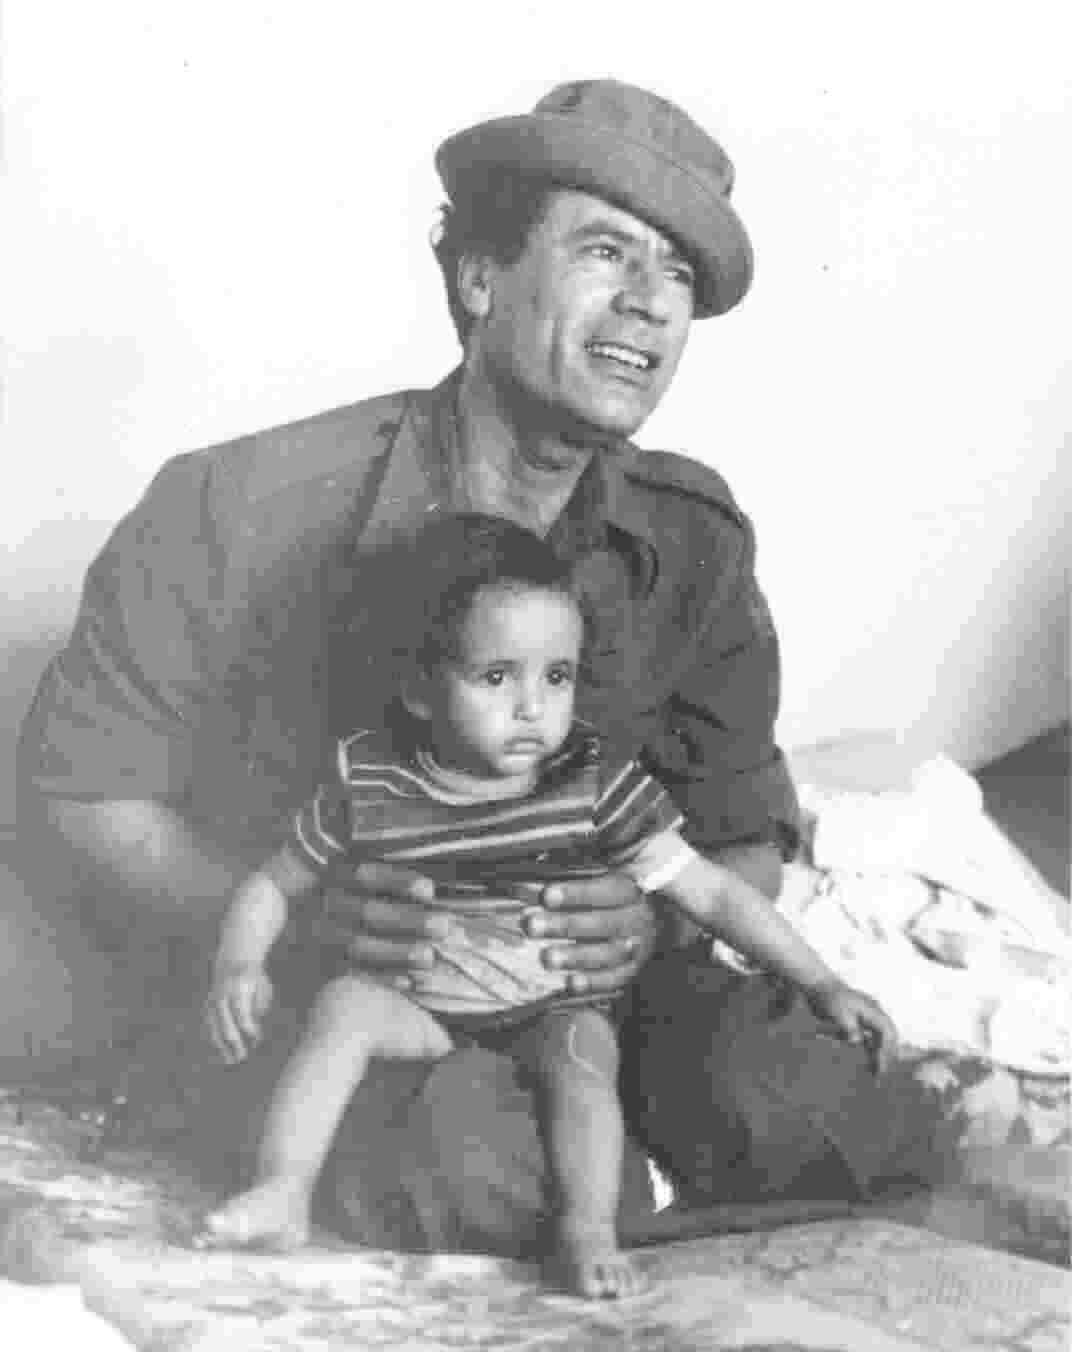 Gaddafi in 1976 with a child on his lap